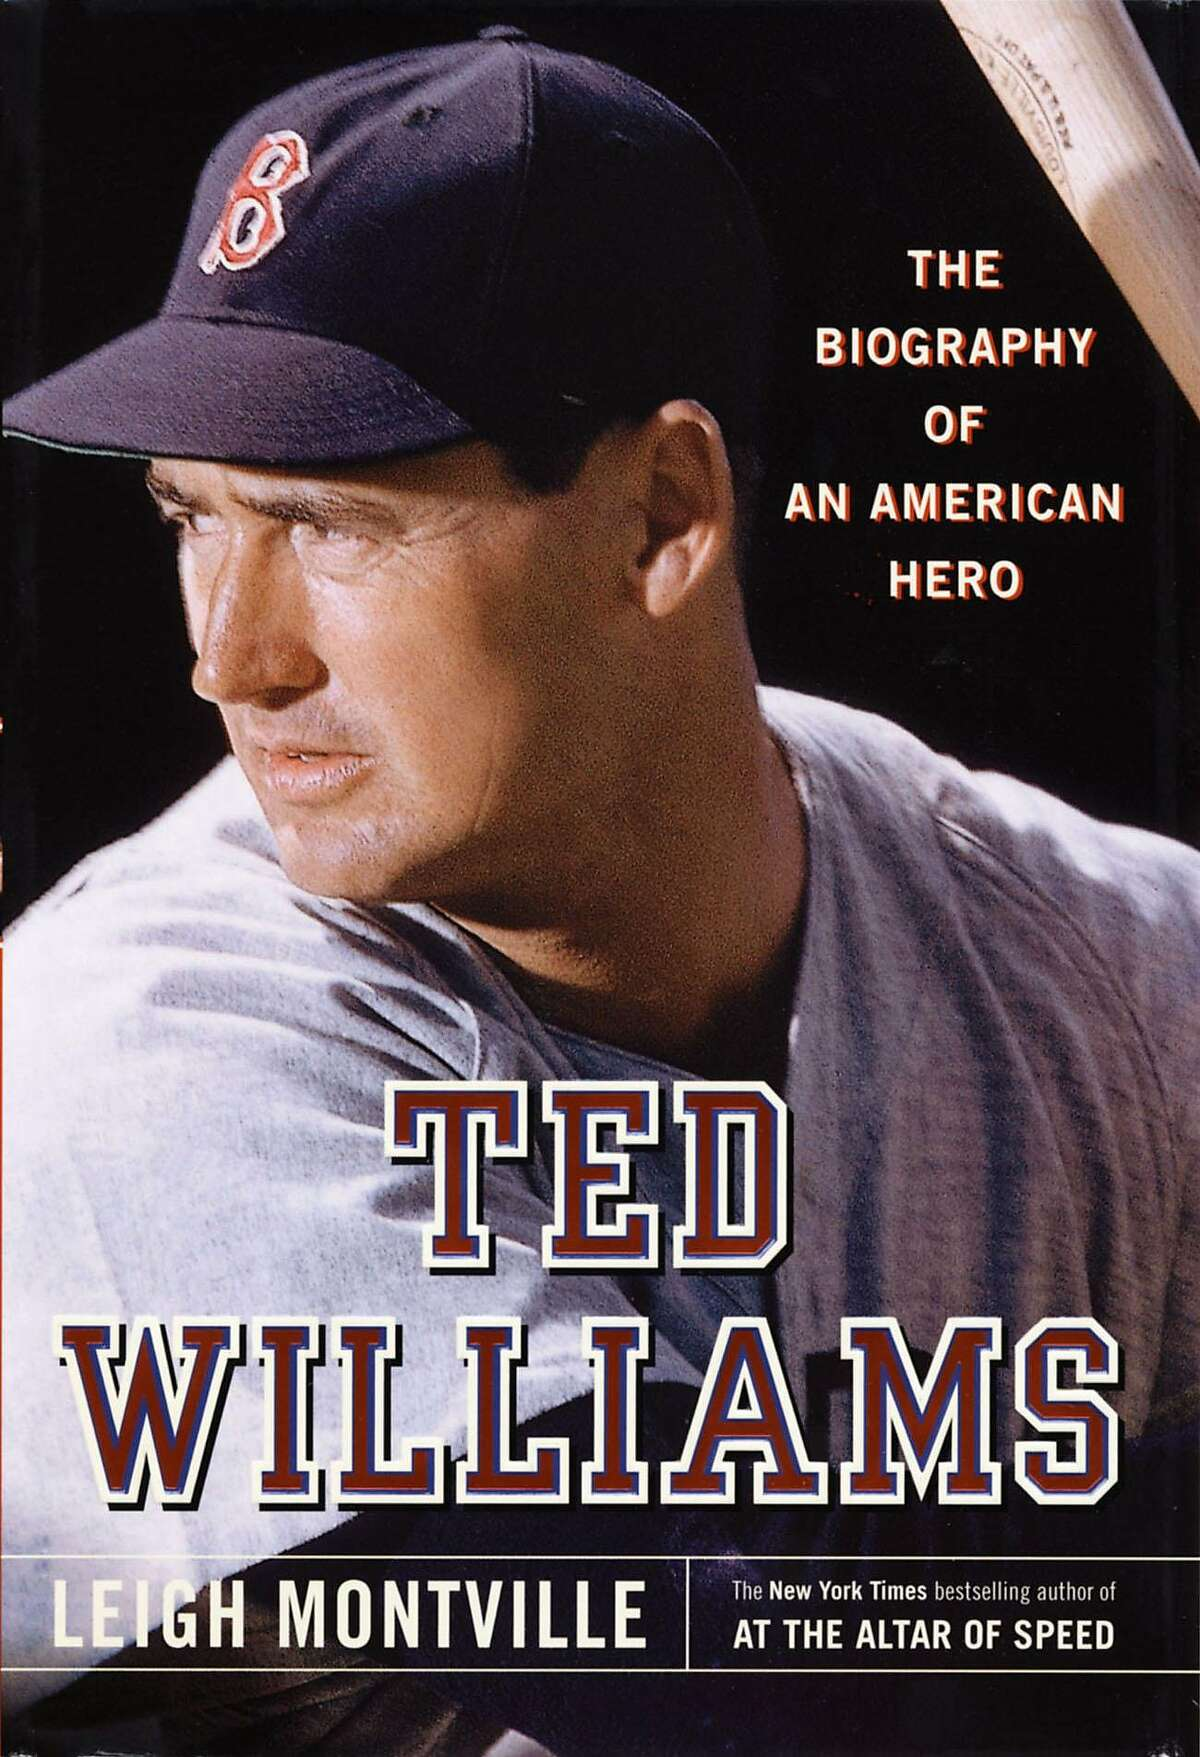 Book jacket ``Ted Williams: The Biography of an American Hero,'' by Leigh Montville. HOUCHRON CAPTION (04/04/2004): None.